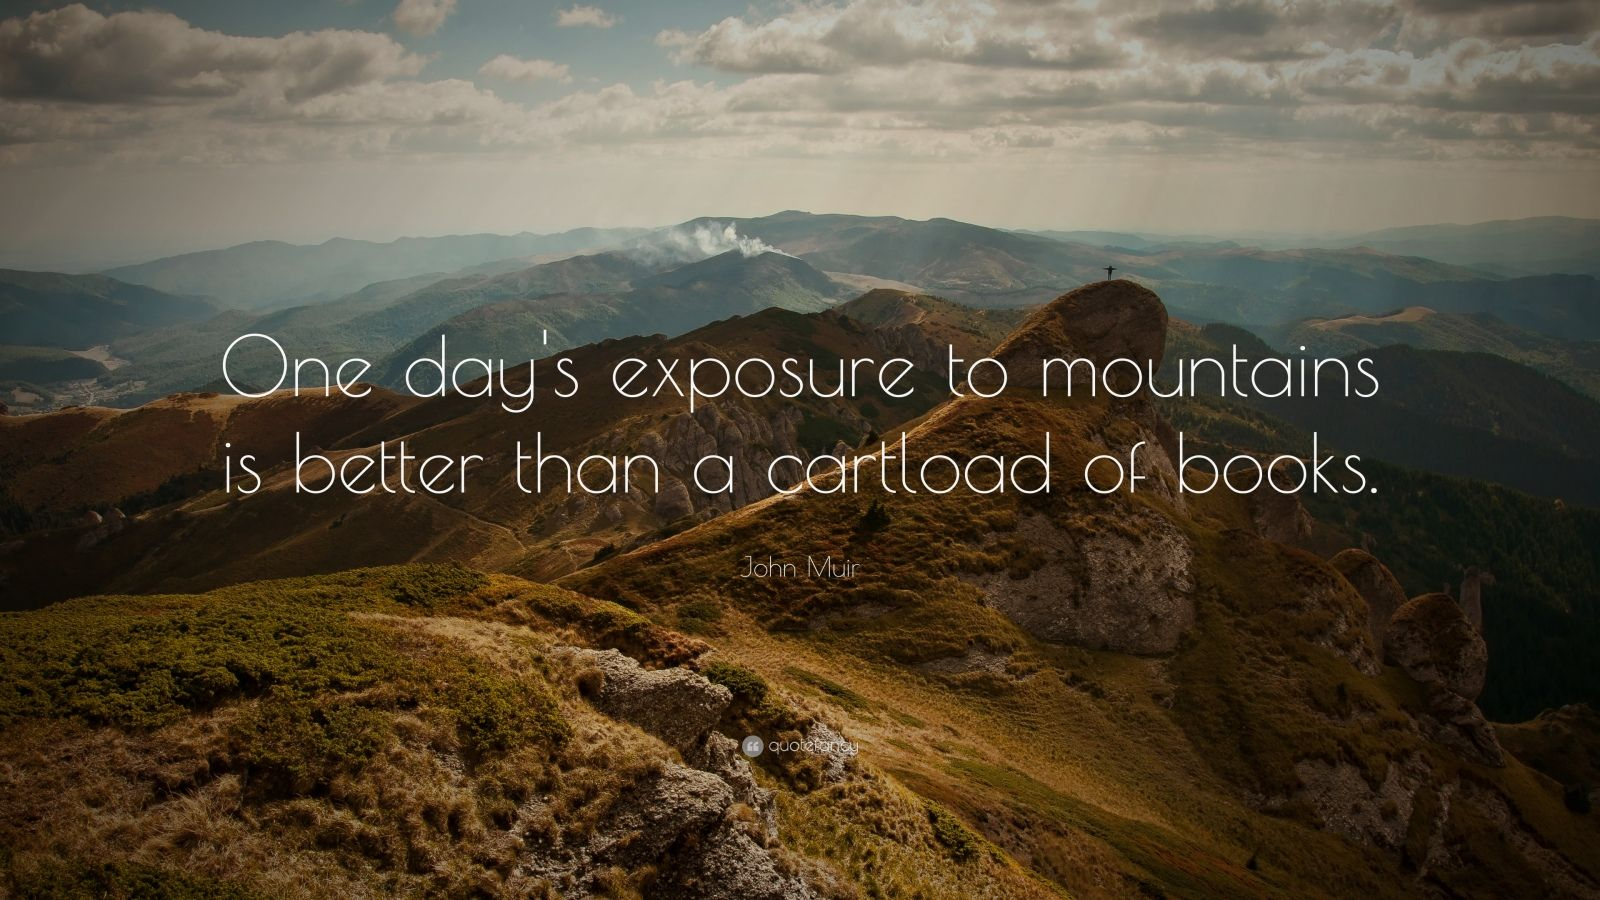 john muir essays john muir quote one day s exposure to mountains is better than a cartload of quotefancy john muir quote one day s exposure to mountains is better than a